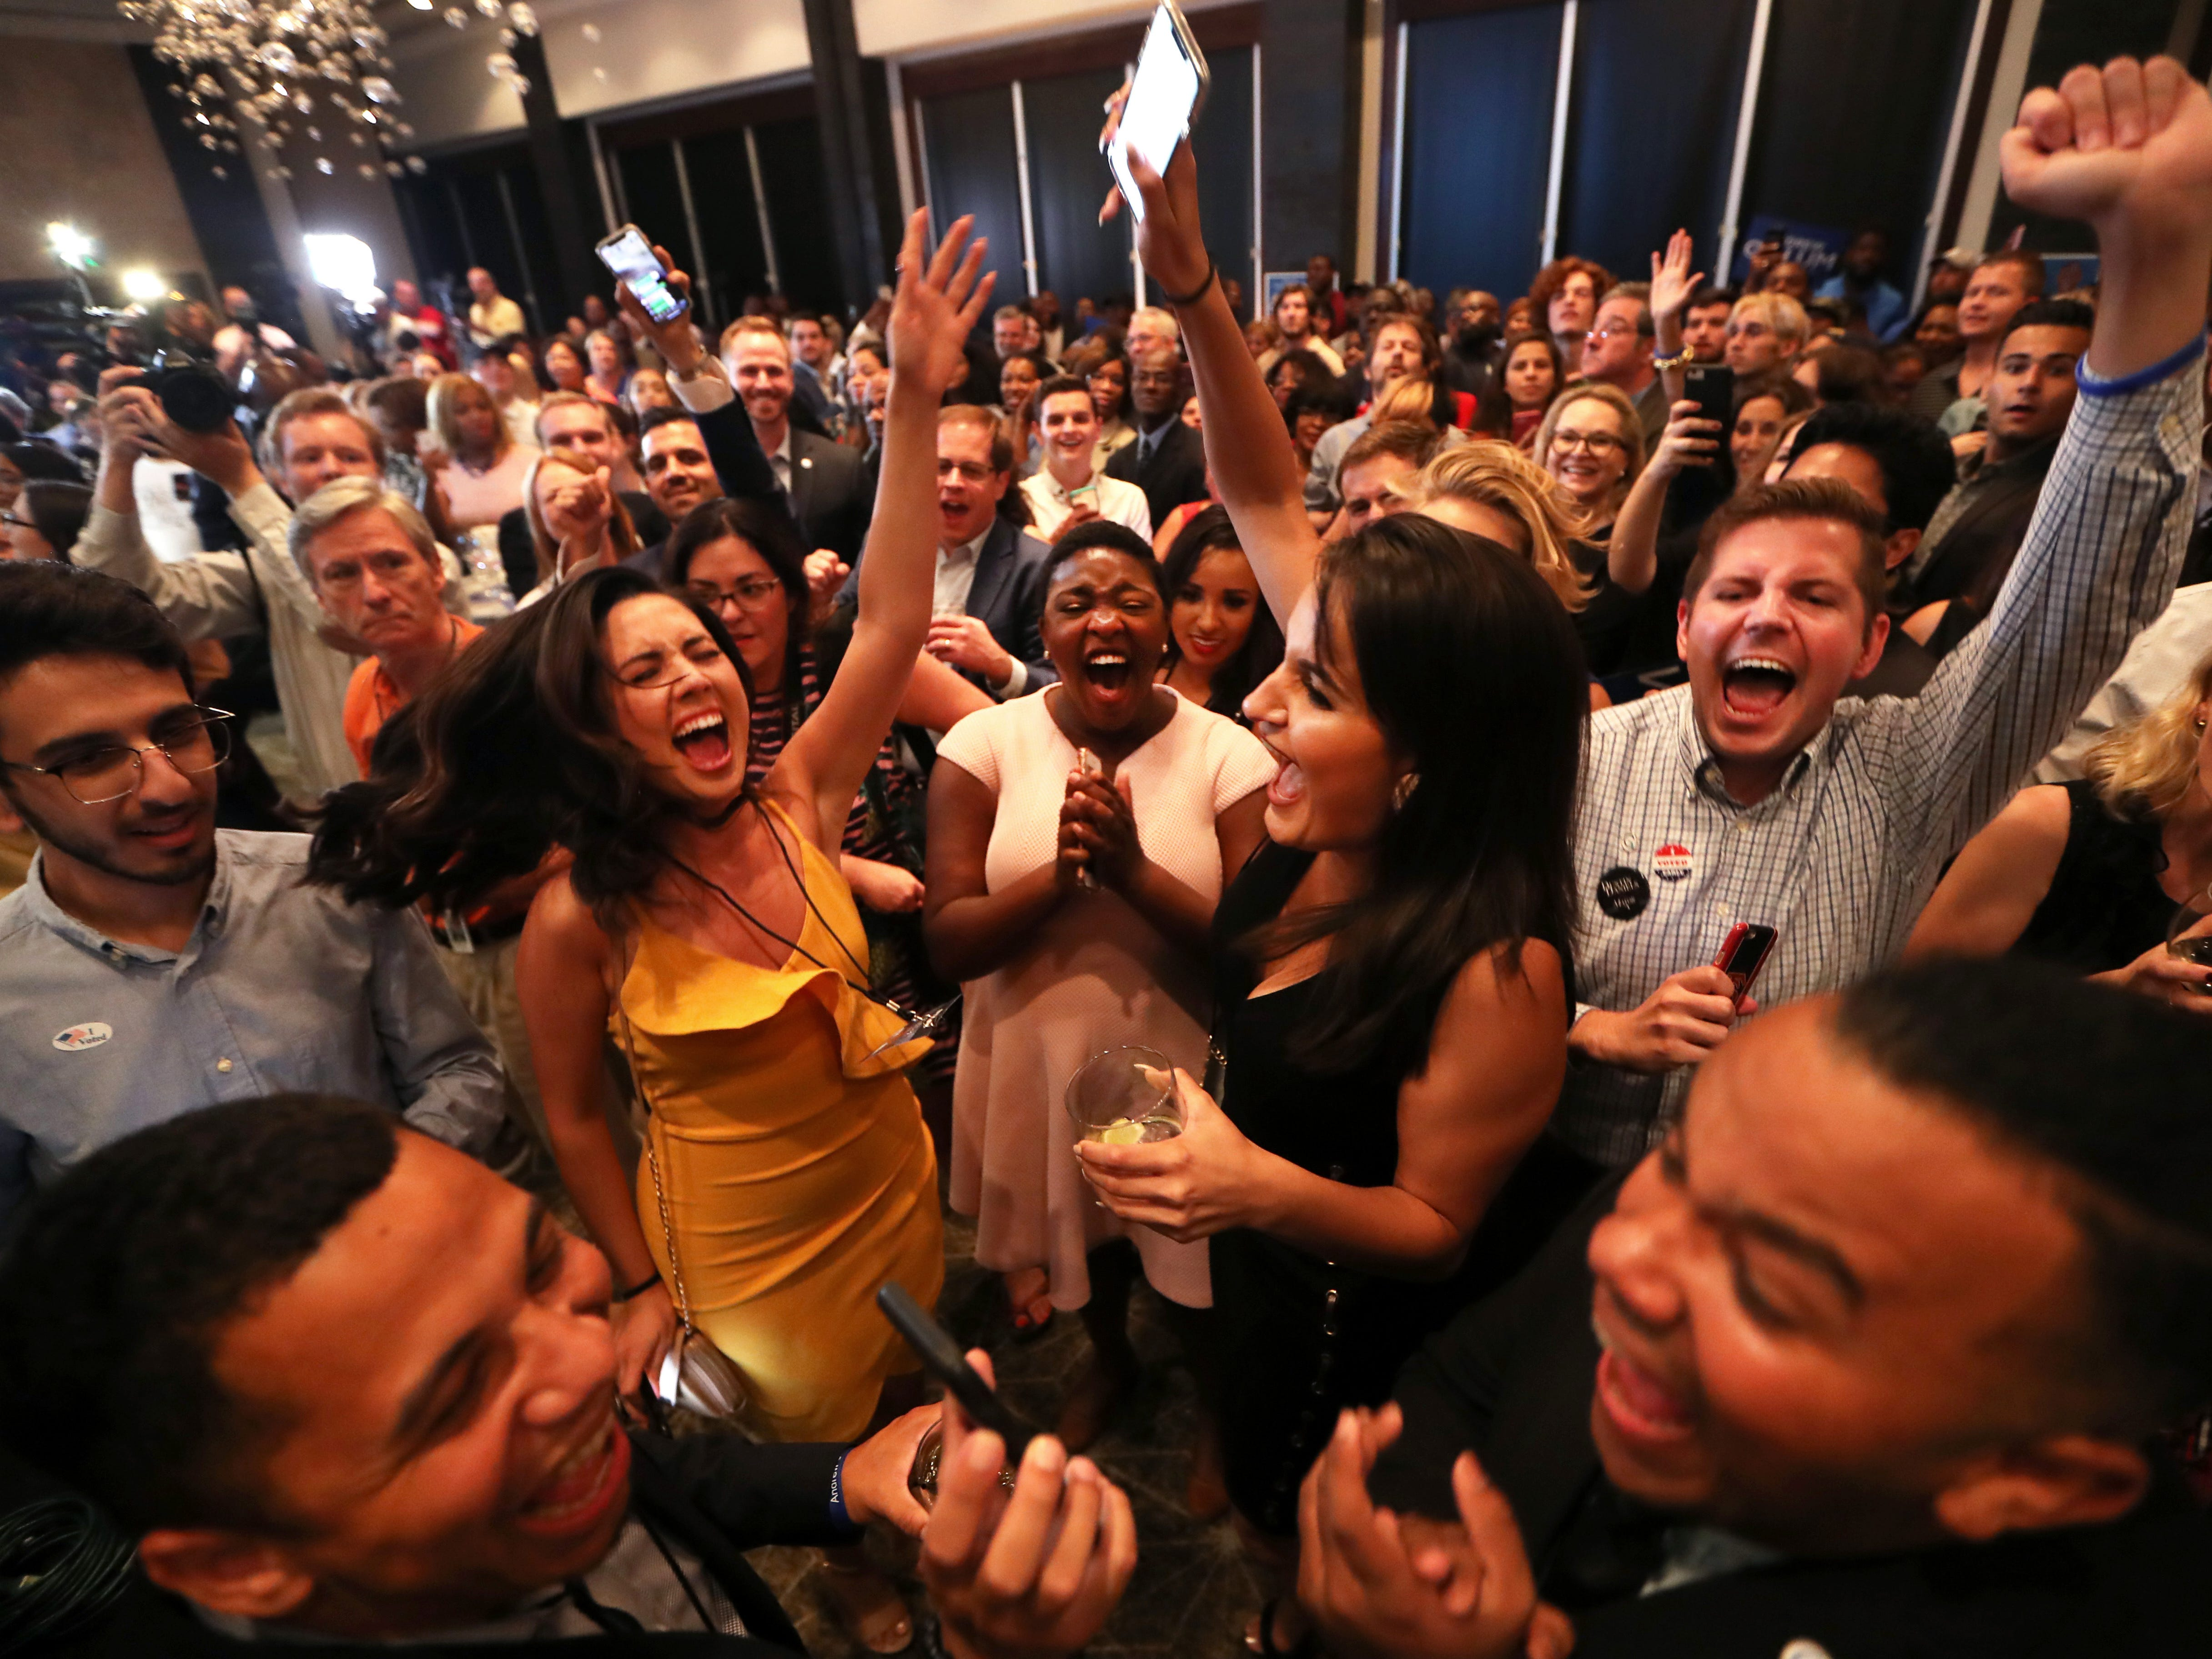 Supporters of democratic gubernatorial nominee Andrew Gillum celebrate his primary victory during his election watch party at Hotel Duval on Tuesday, Aug. 28, 2018.